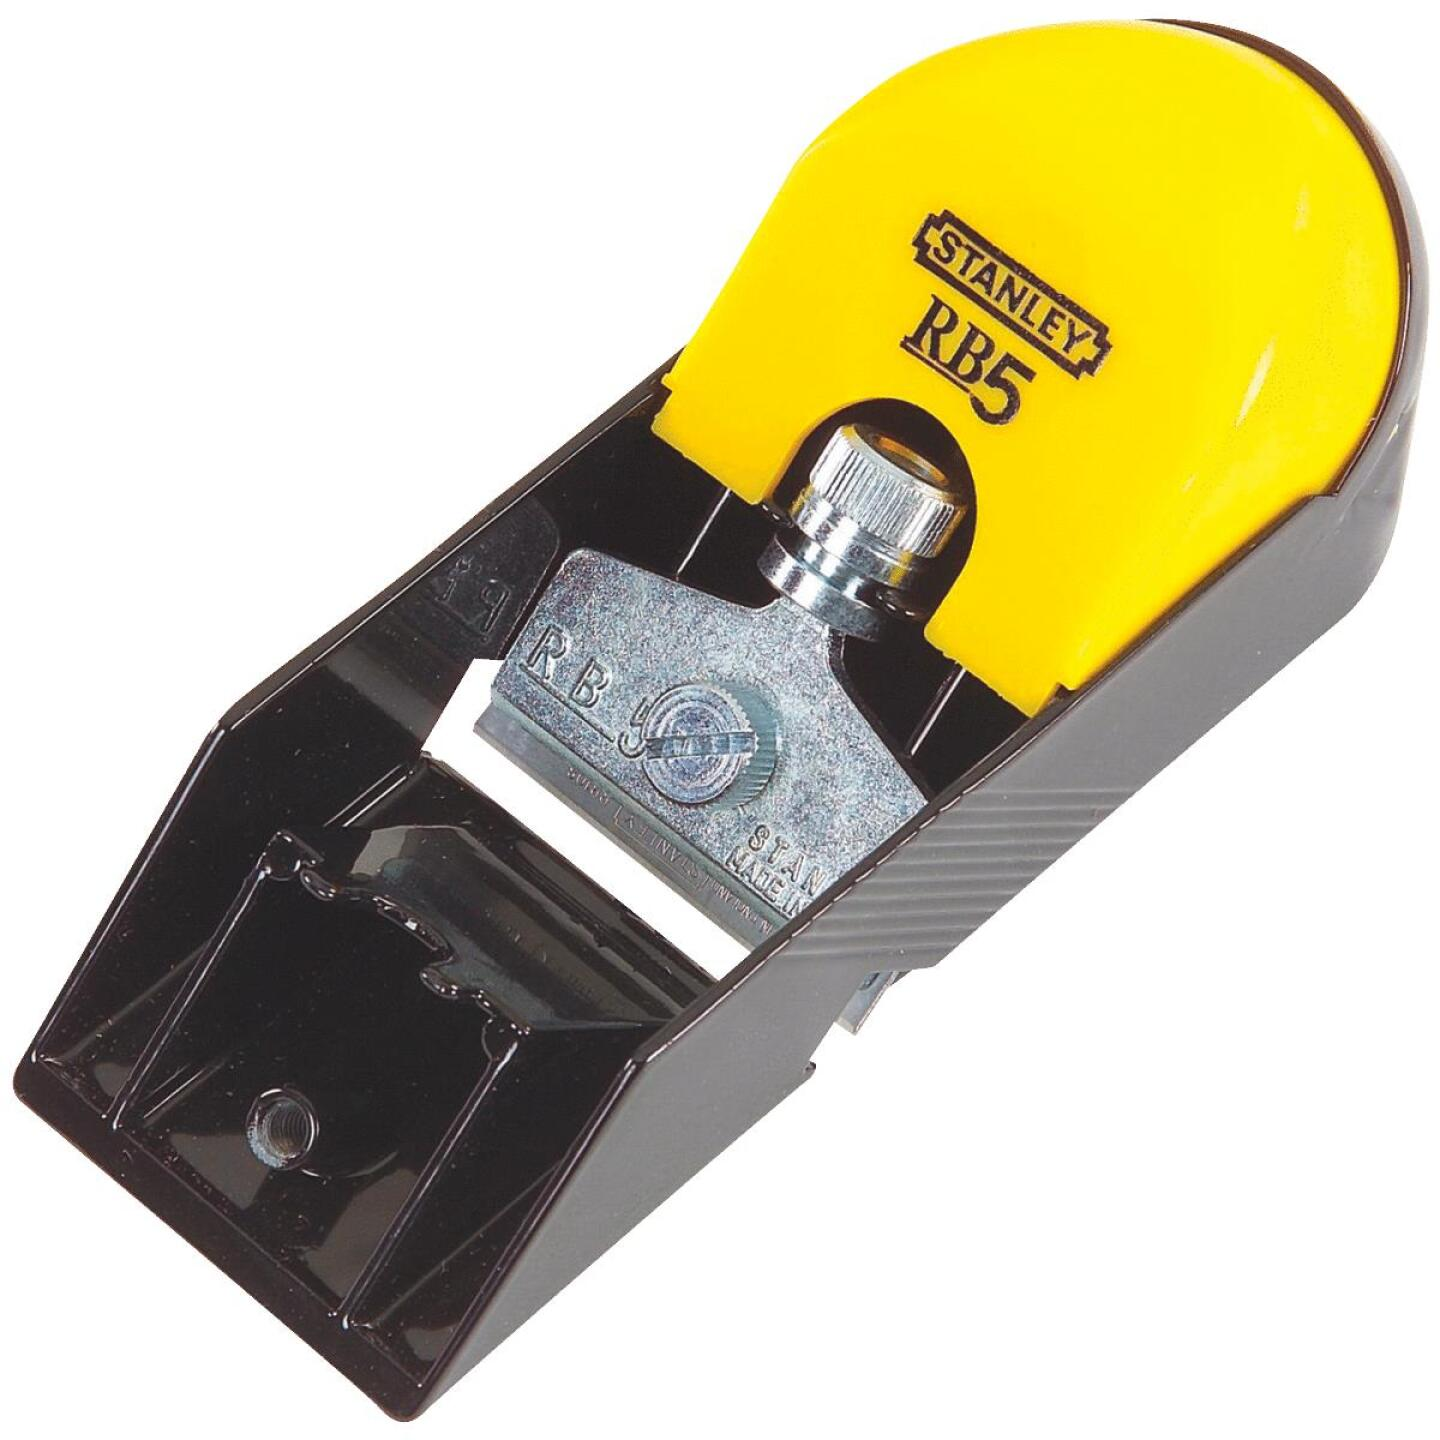 Stanley RB5 6 In. Mini Block Plane with 2 In. Cutter Image 1